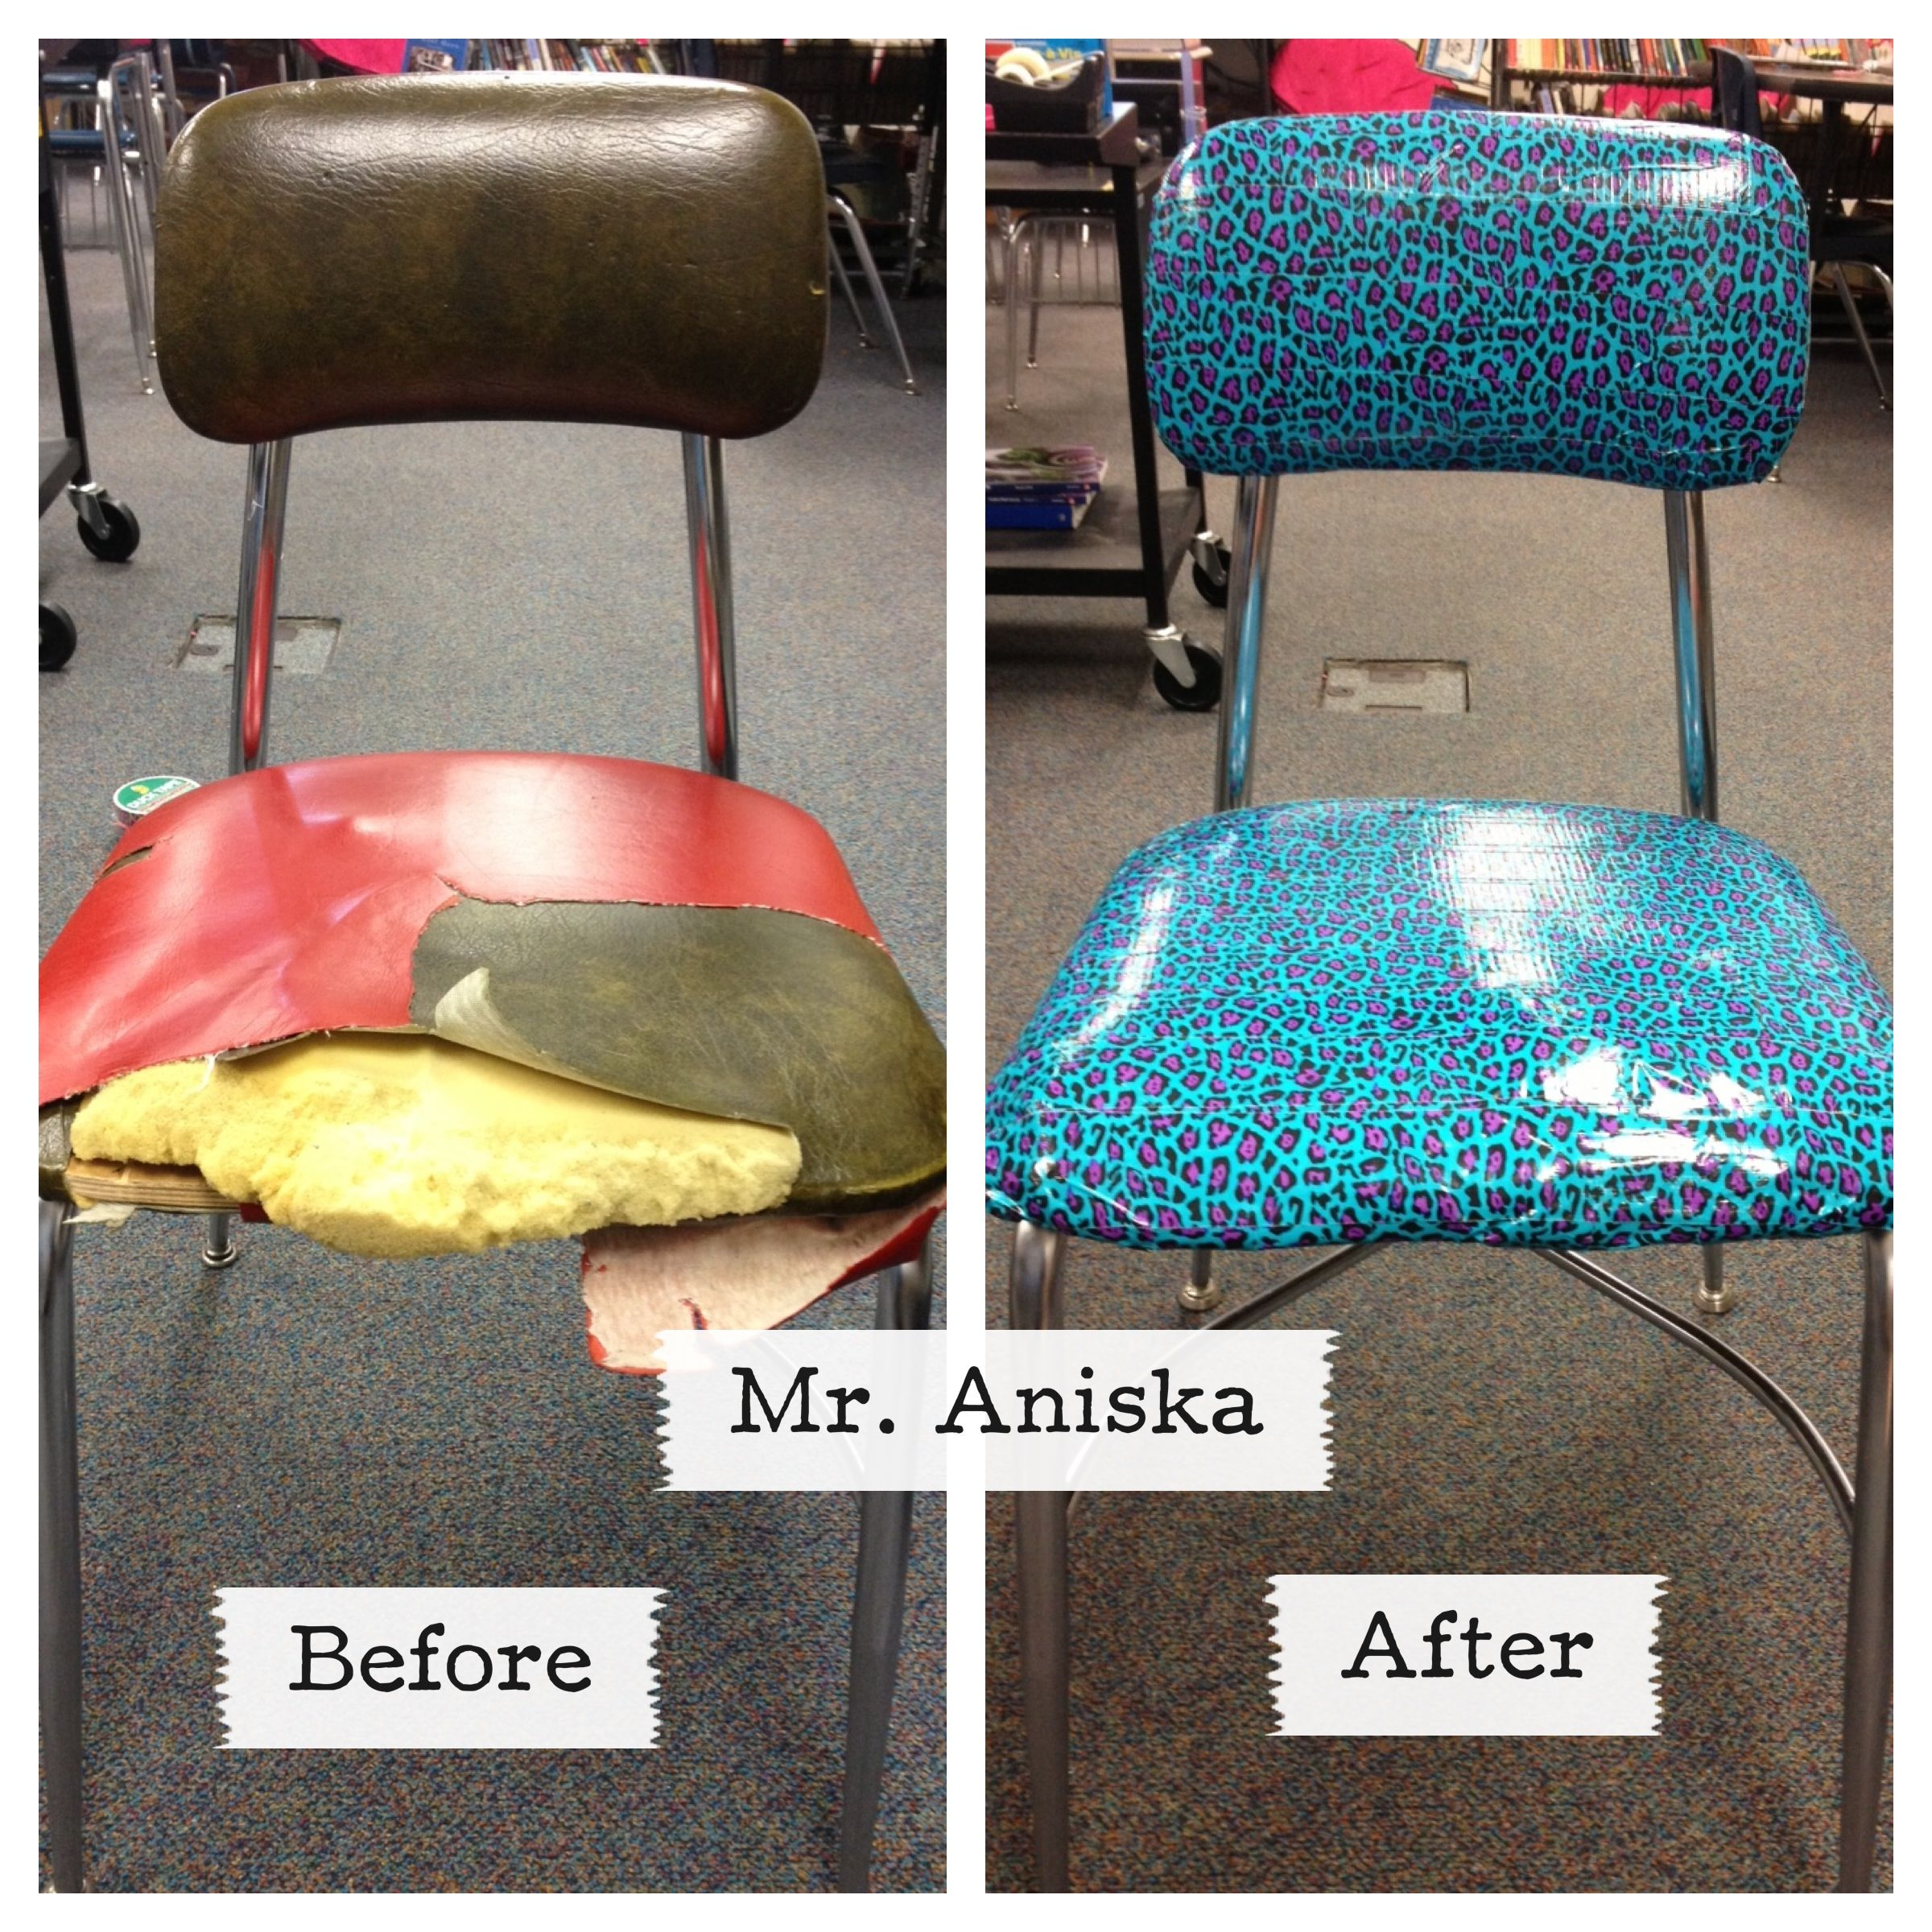 Diy Duct Tape Chair Duct Tape Diy Duct Tape Crafts Duct Tape